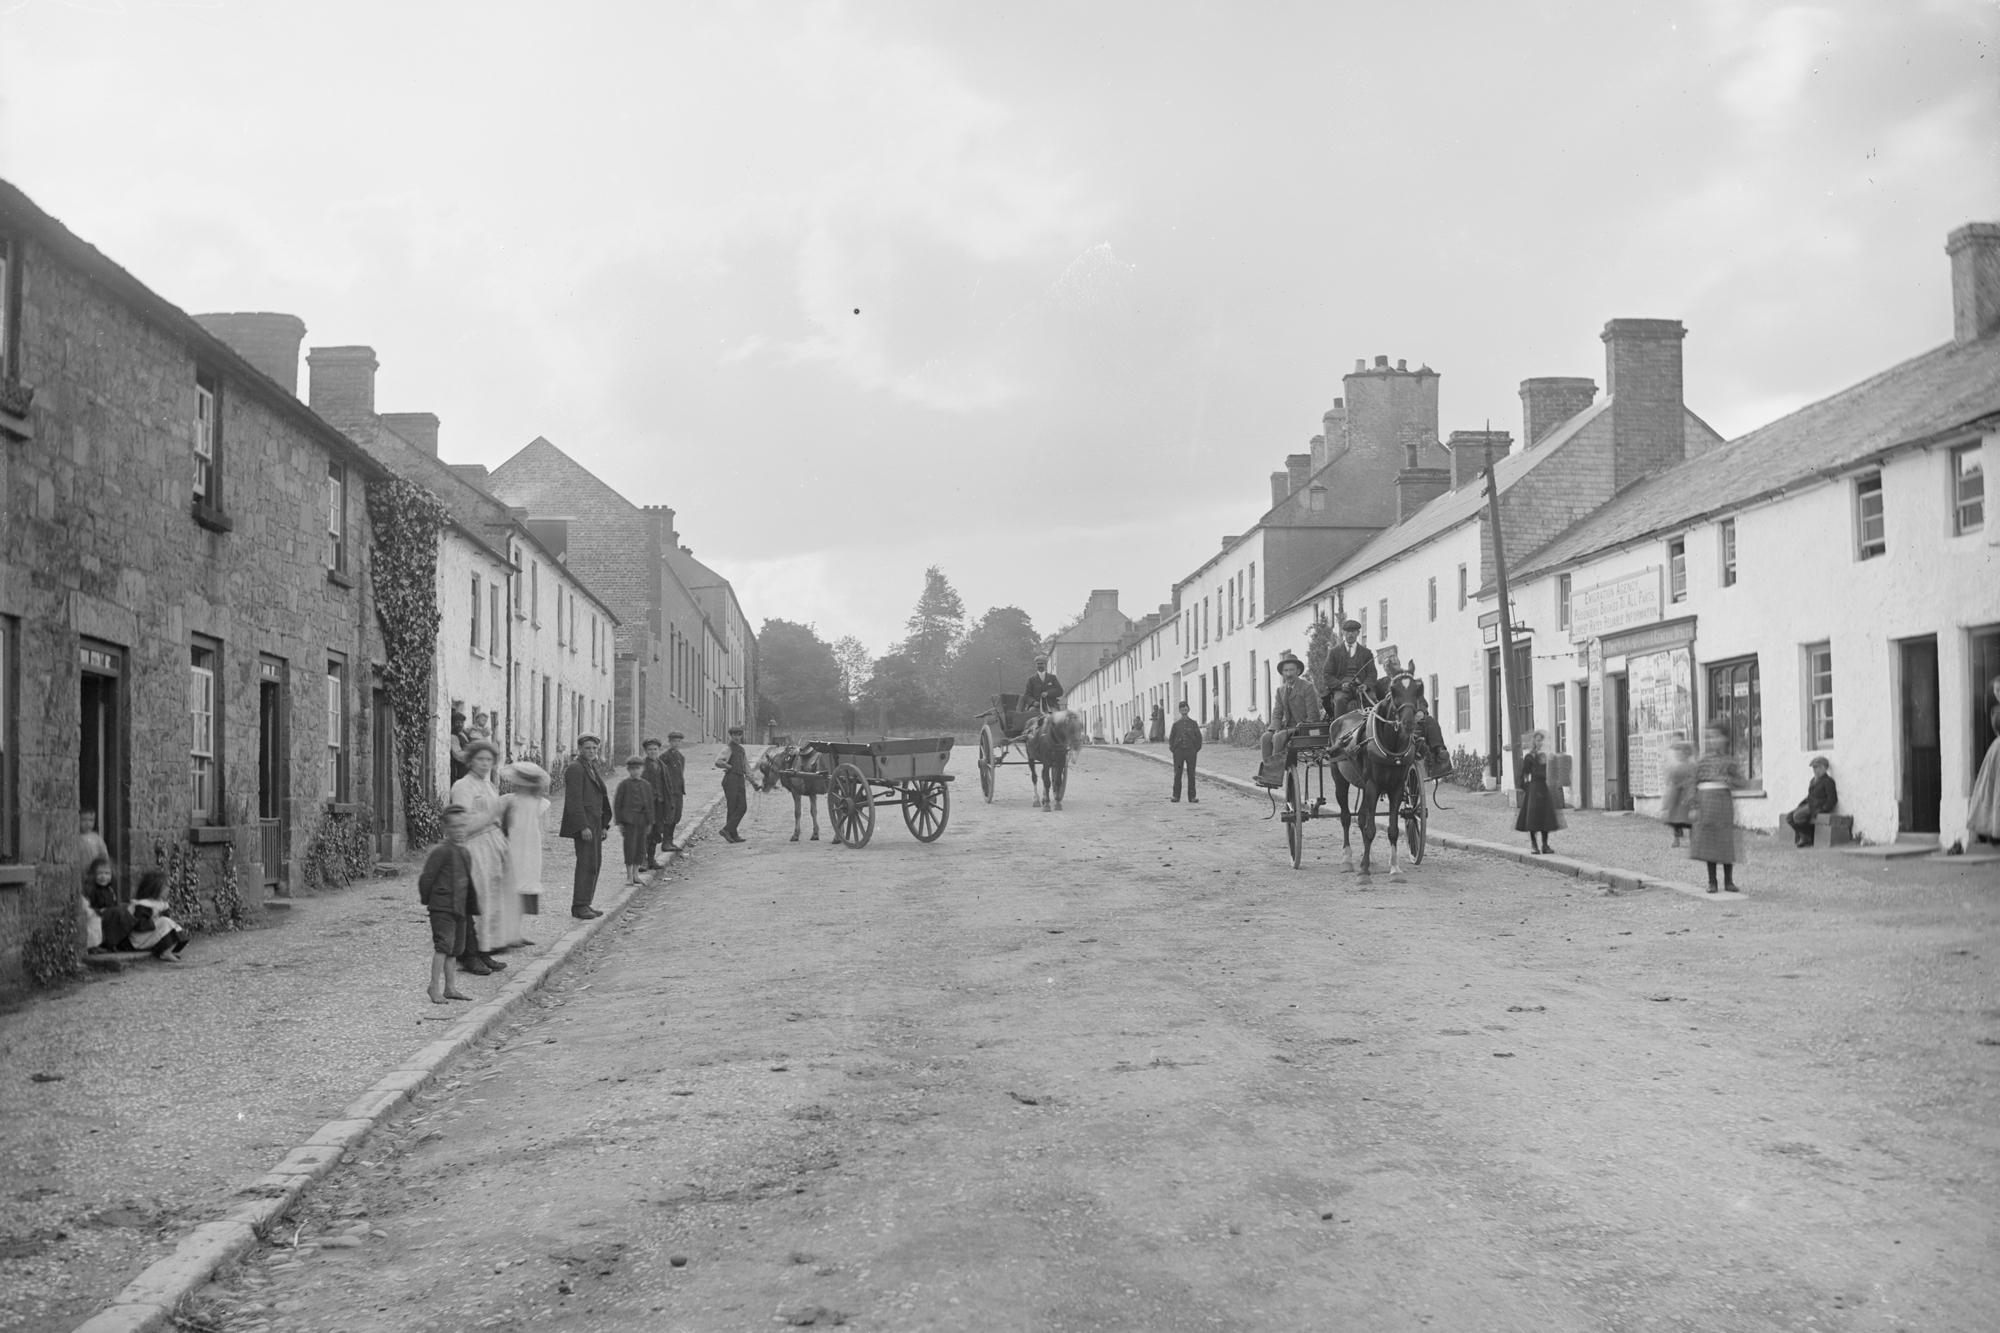 Famine Era - Main Street, Donaghmore, Co. Tyrone